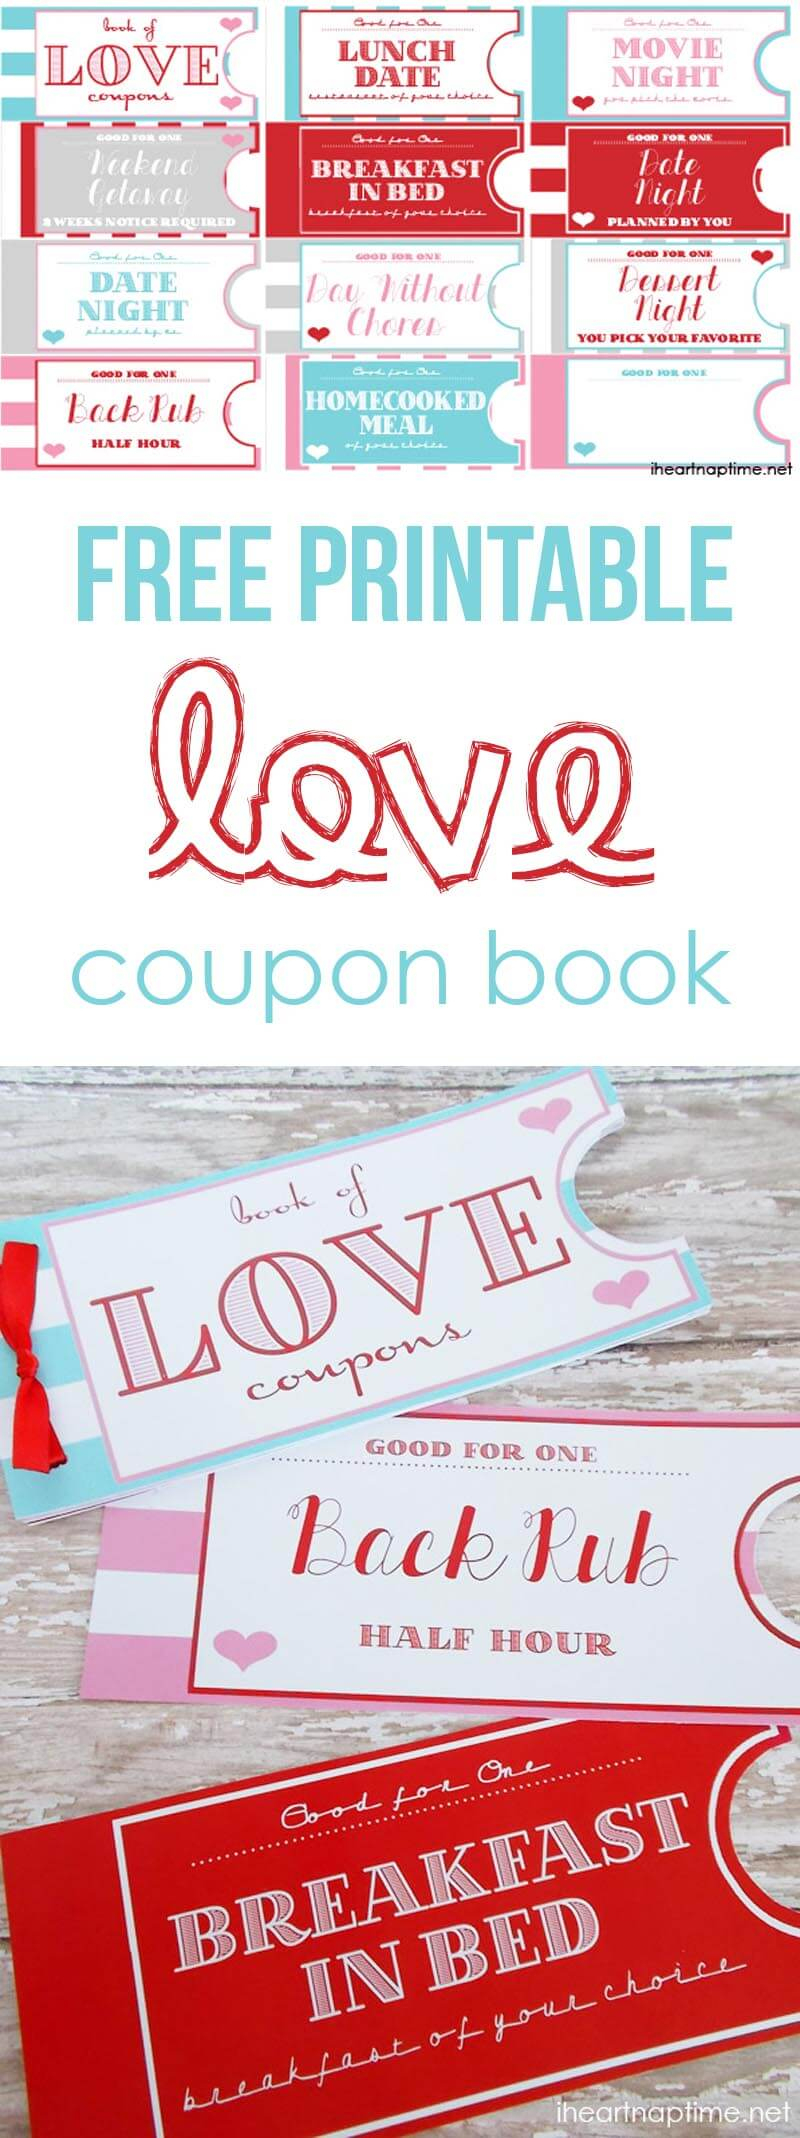 Printable Love Coupon Book -The Perfect Valentine's Day Gift! - Free Printable Coupon Book For Boyfriend